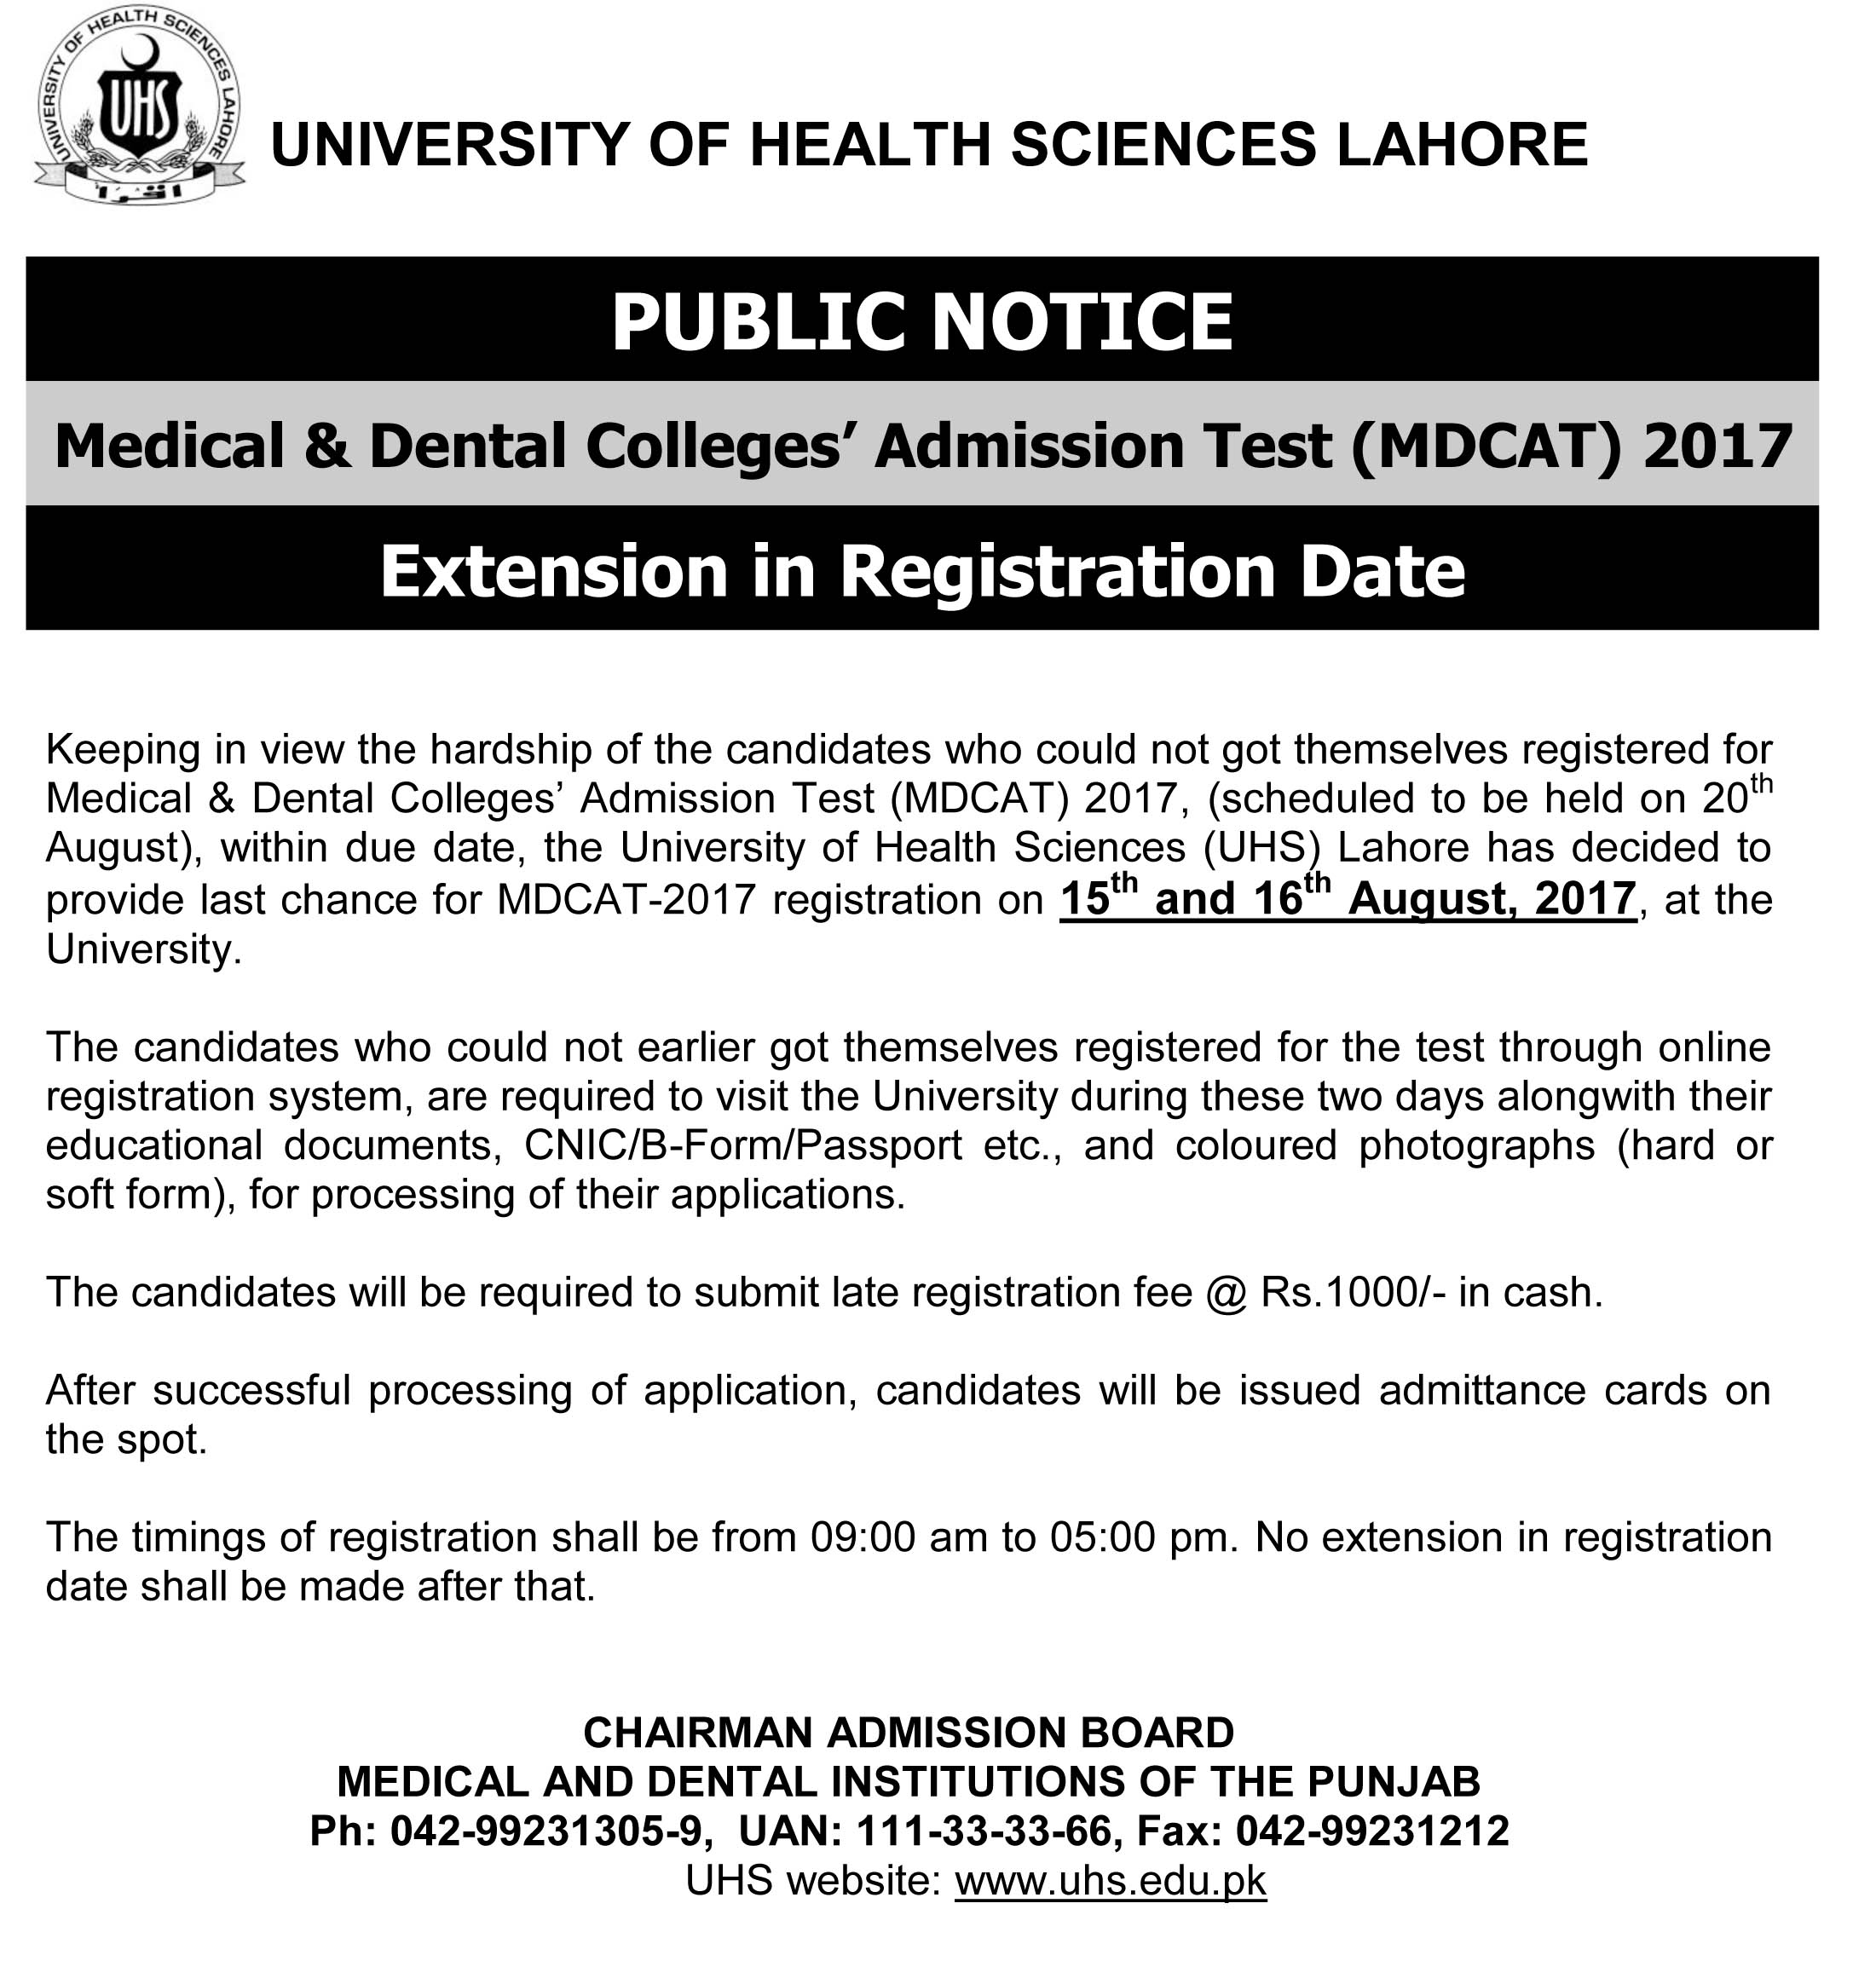 University of Health Sciences (Lahore) MDCAT- 2017 Extension in Registration Date